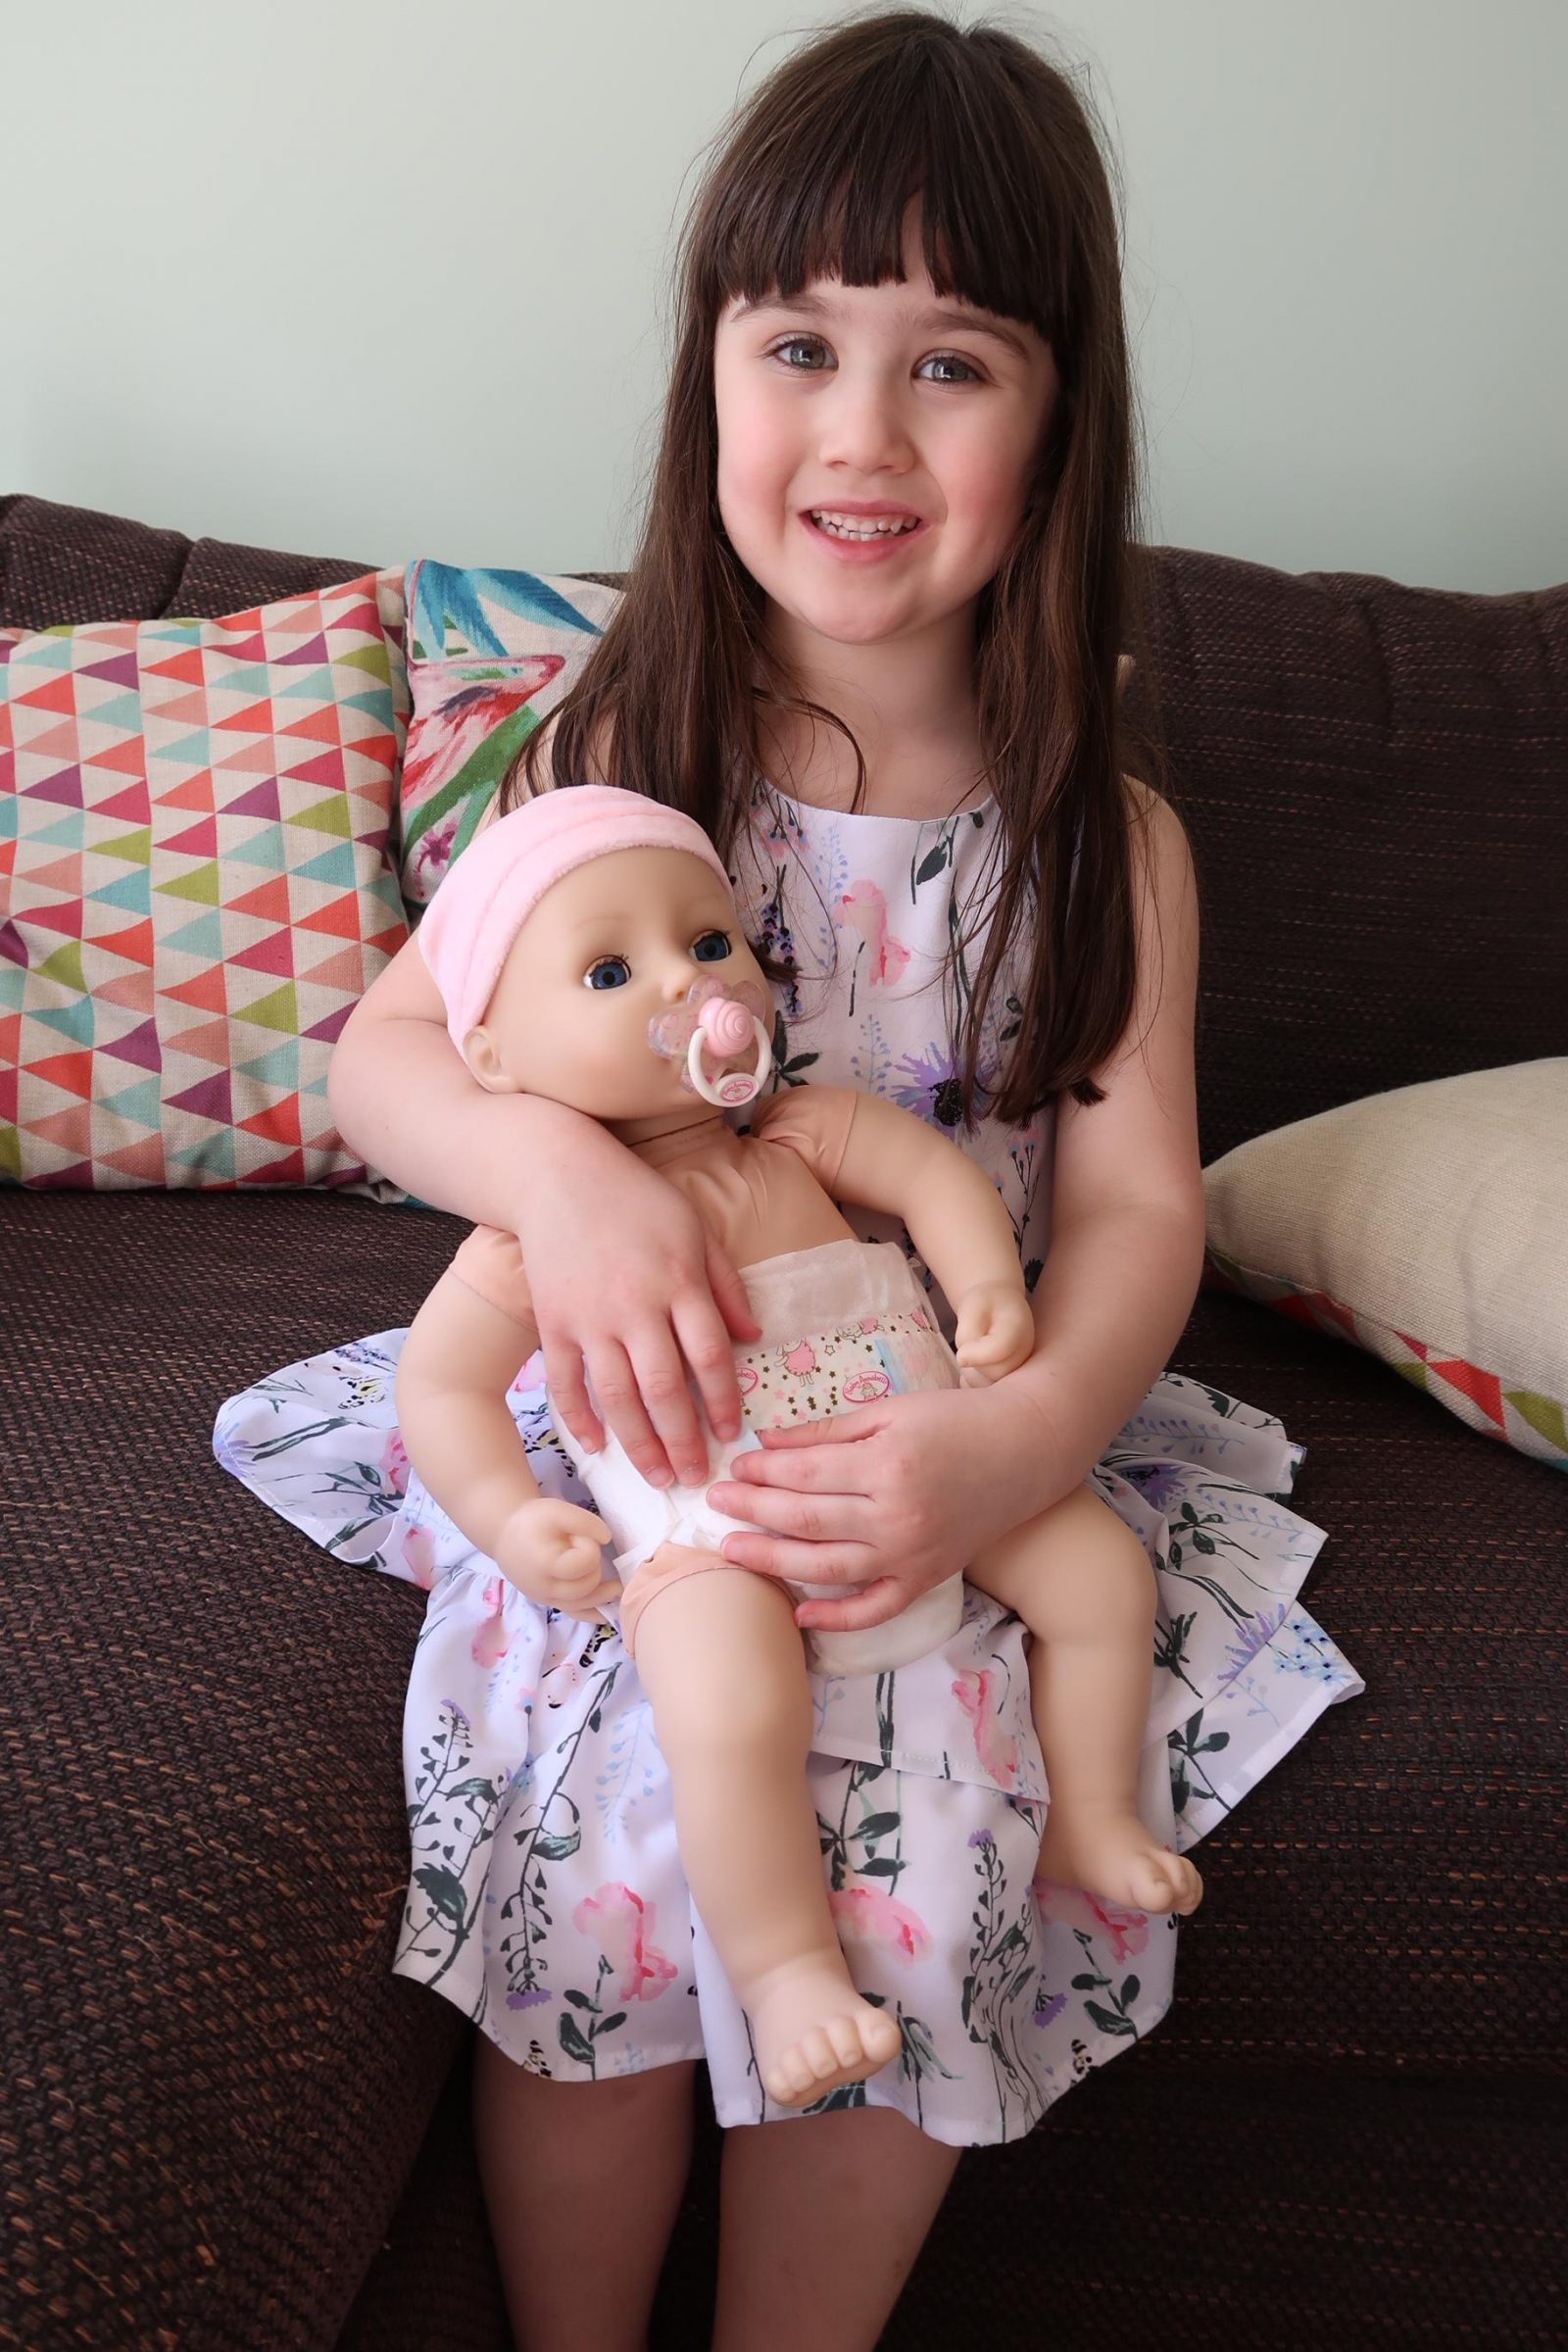 child holding interactive baby annabell